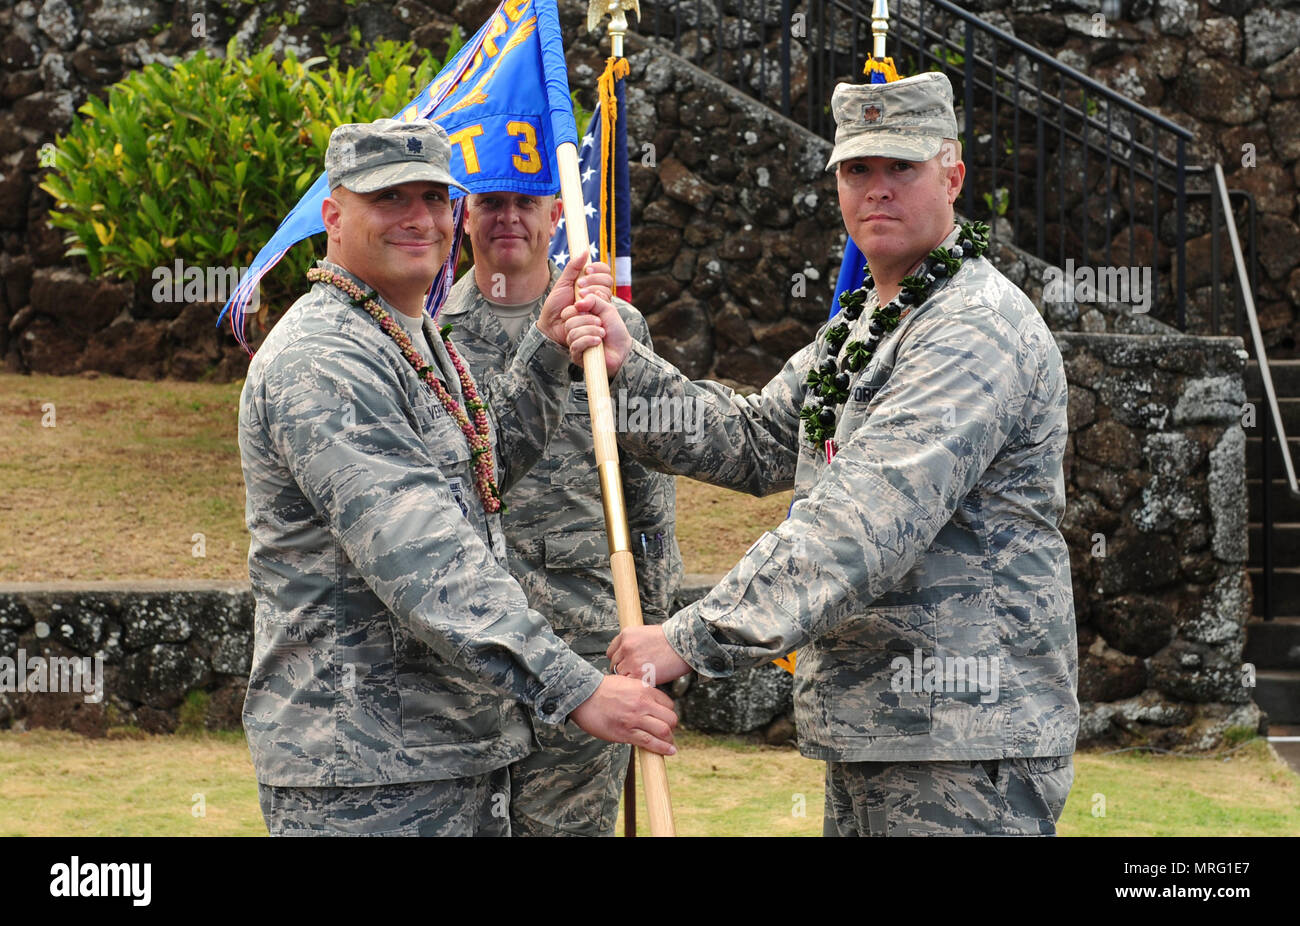 Lt. Col. Phillip Verroco, 21st Space Operations Squadron commander, takes the detachment flag from Maj. Robert F. Shumaker, Detachment 3 outgoing commander, during the Detachment 3 Change of Command Ceremony, Kaena Point, Hawaii, June 9, 2017.  Detachment 3 is a component of the 21st Space Operations Squadron, 50th Network Operations Group, 50th Space Wing, and is located on the western tip of Oahu.  It is the oldest and one of seven worldwide remote tracking stations in the Air Force Satellite Control Network.  (U.S. Air Force photo by Tech. Sgt. Heather Redman) - Stock Image